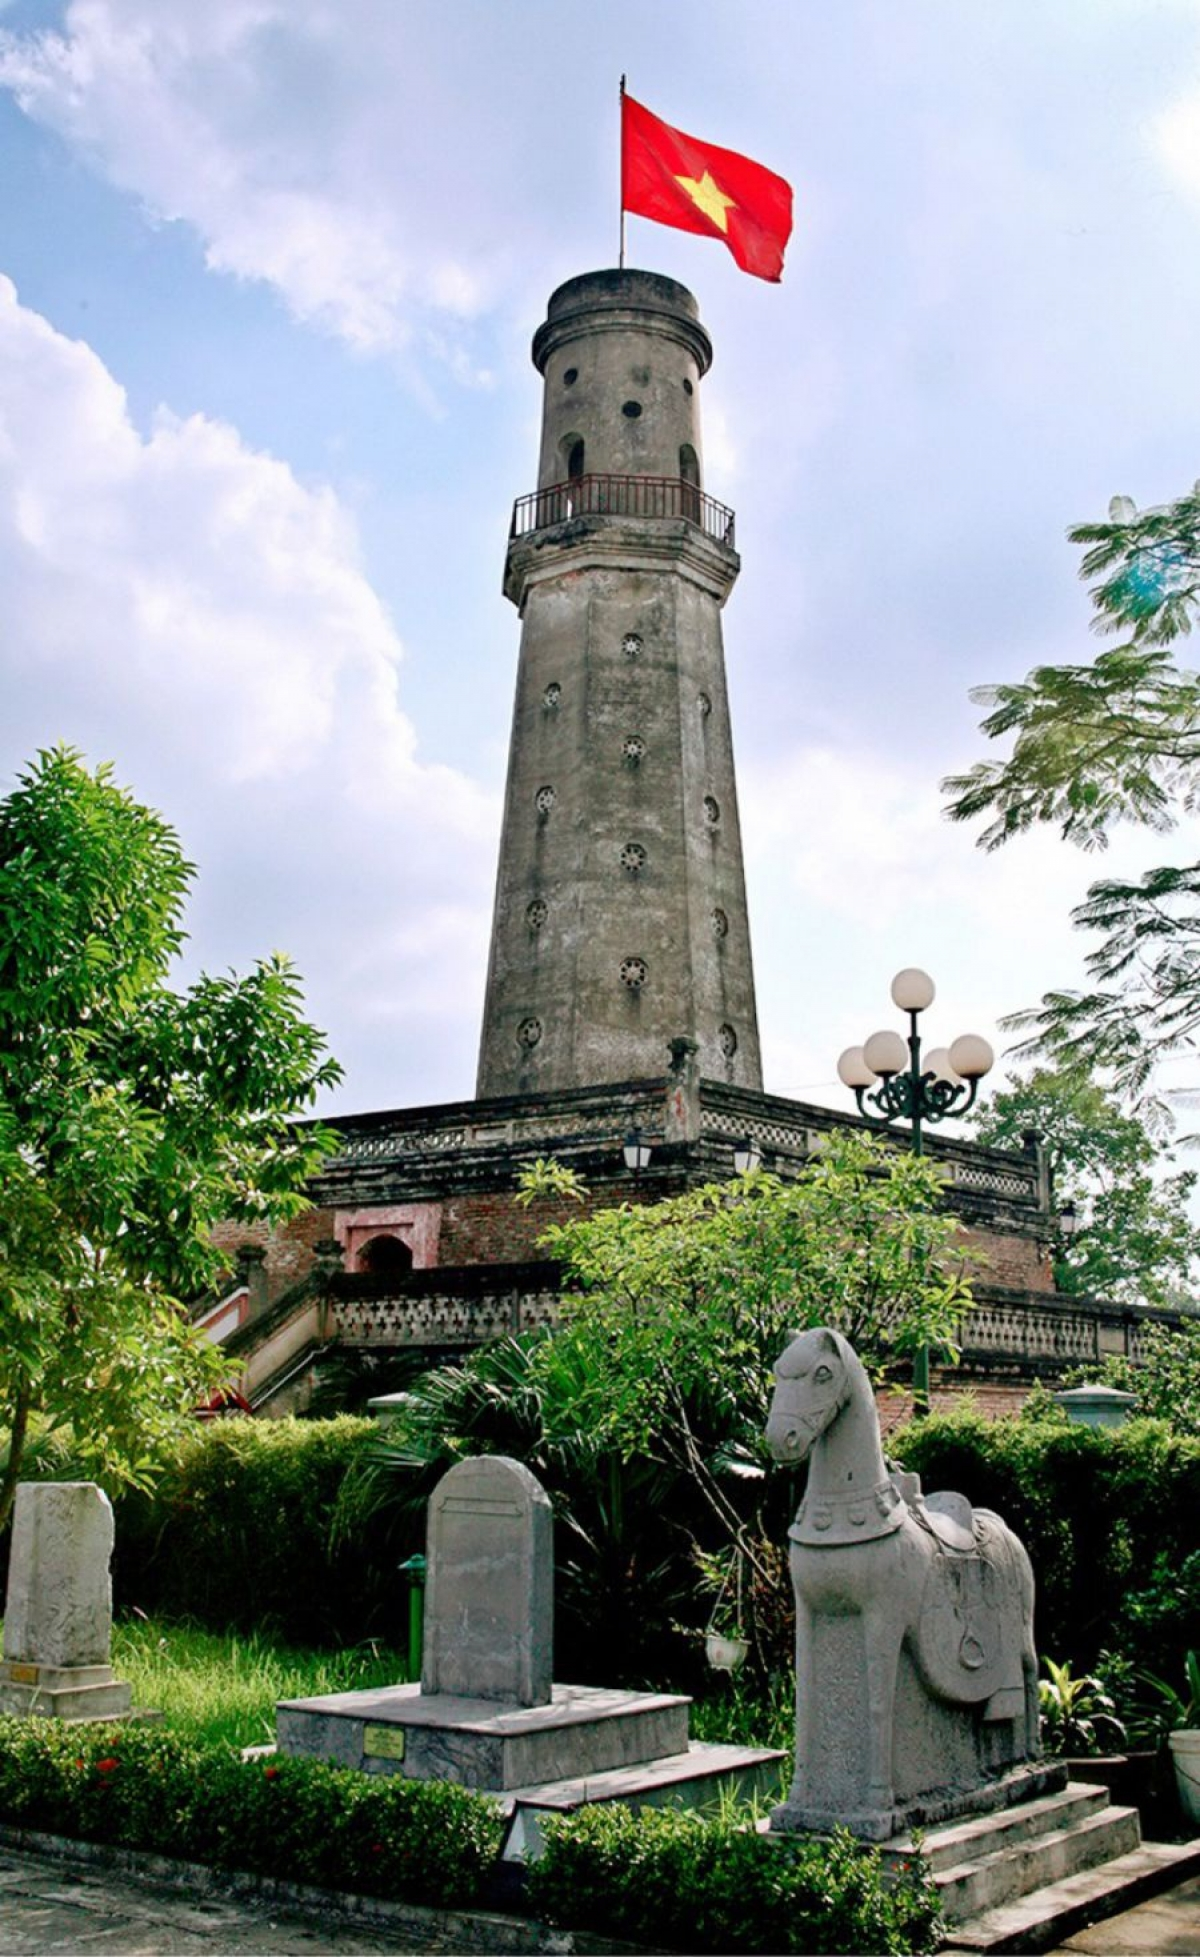 A flag tower in the northern province of Nam Dinh was completed by the Nguyen dynasty back in 1843. Despite being destroyed in during previous conflicts, the site was restored in 1997. (Photo: Nam Dinh province's museum)